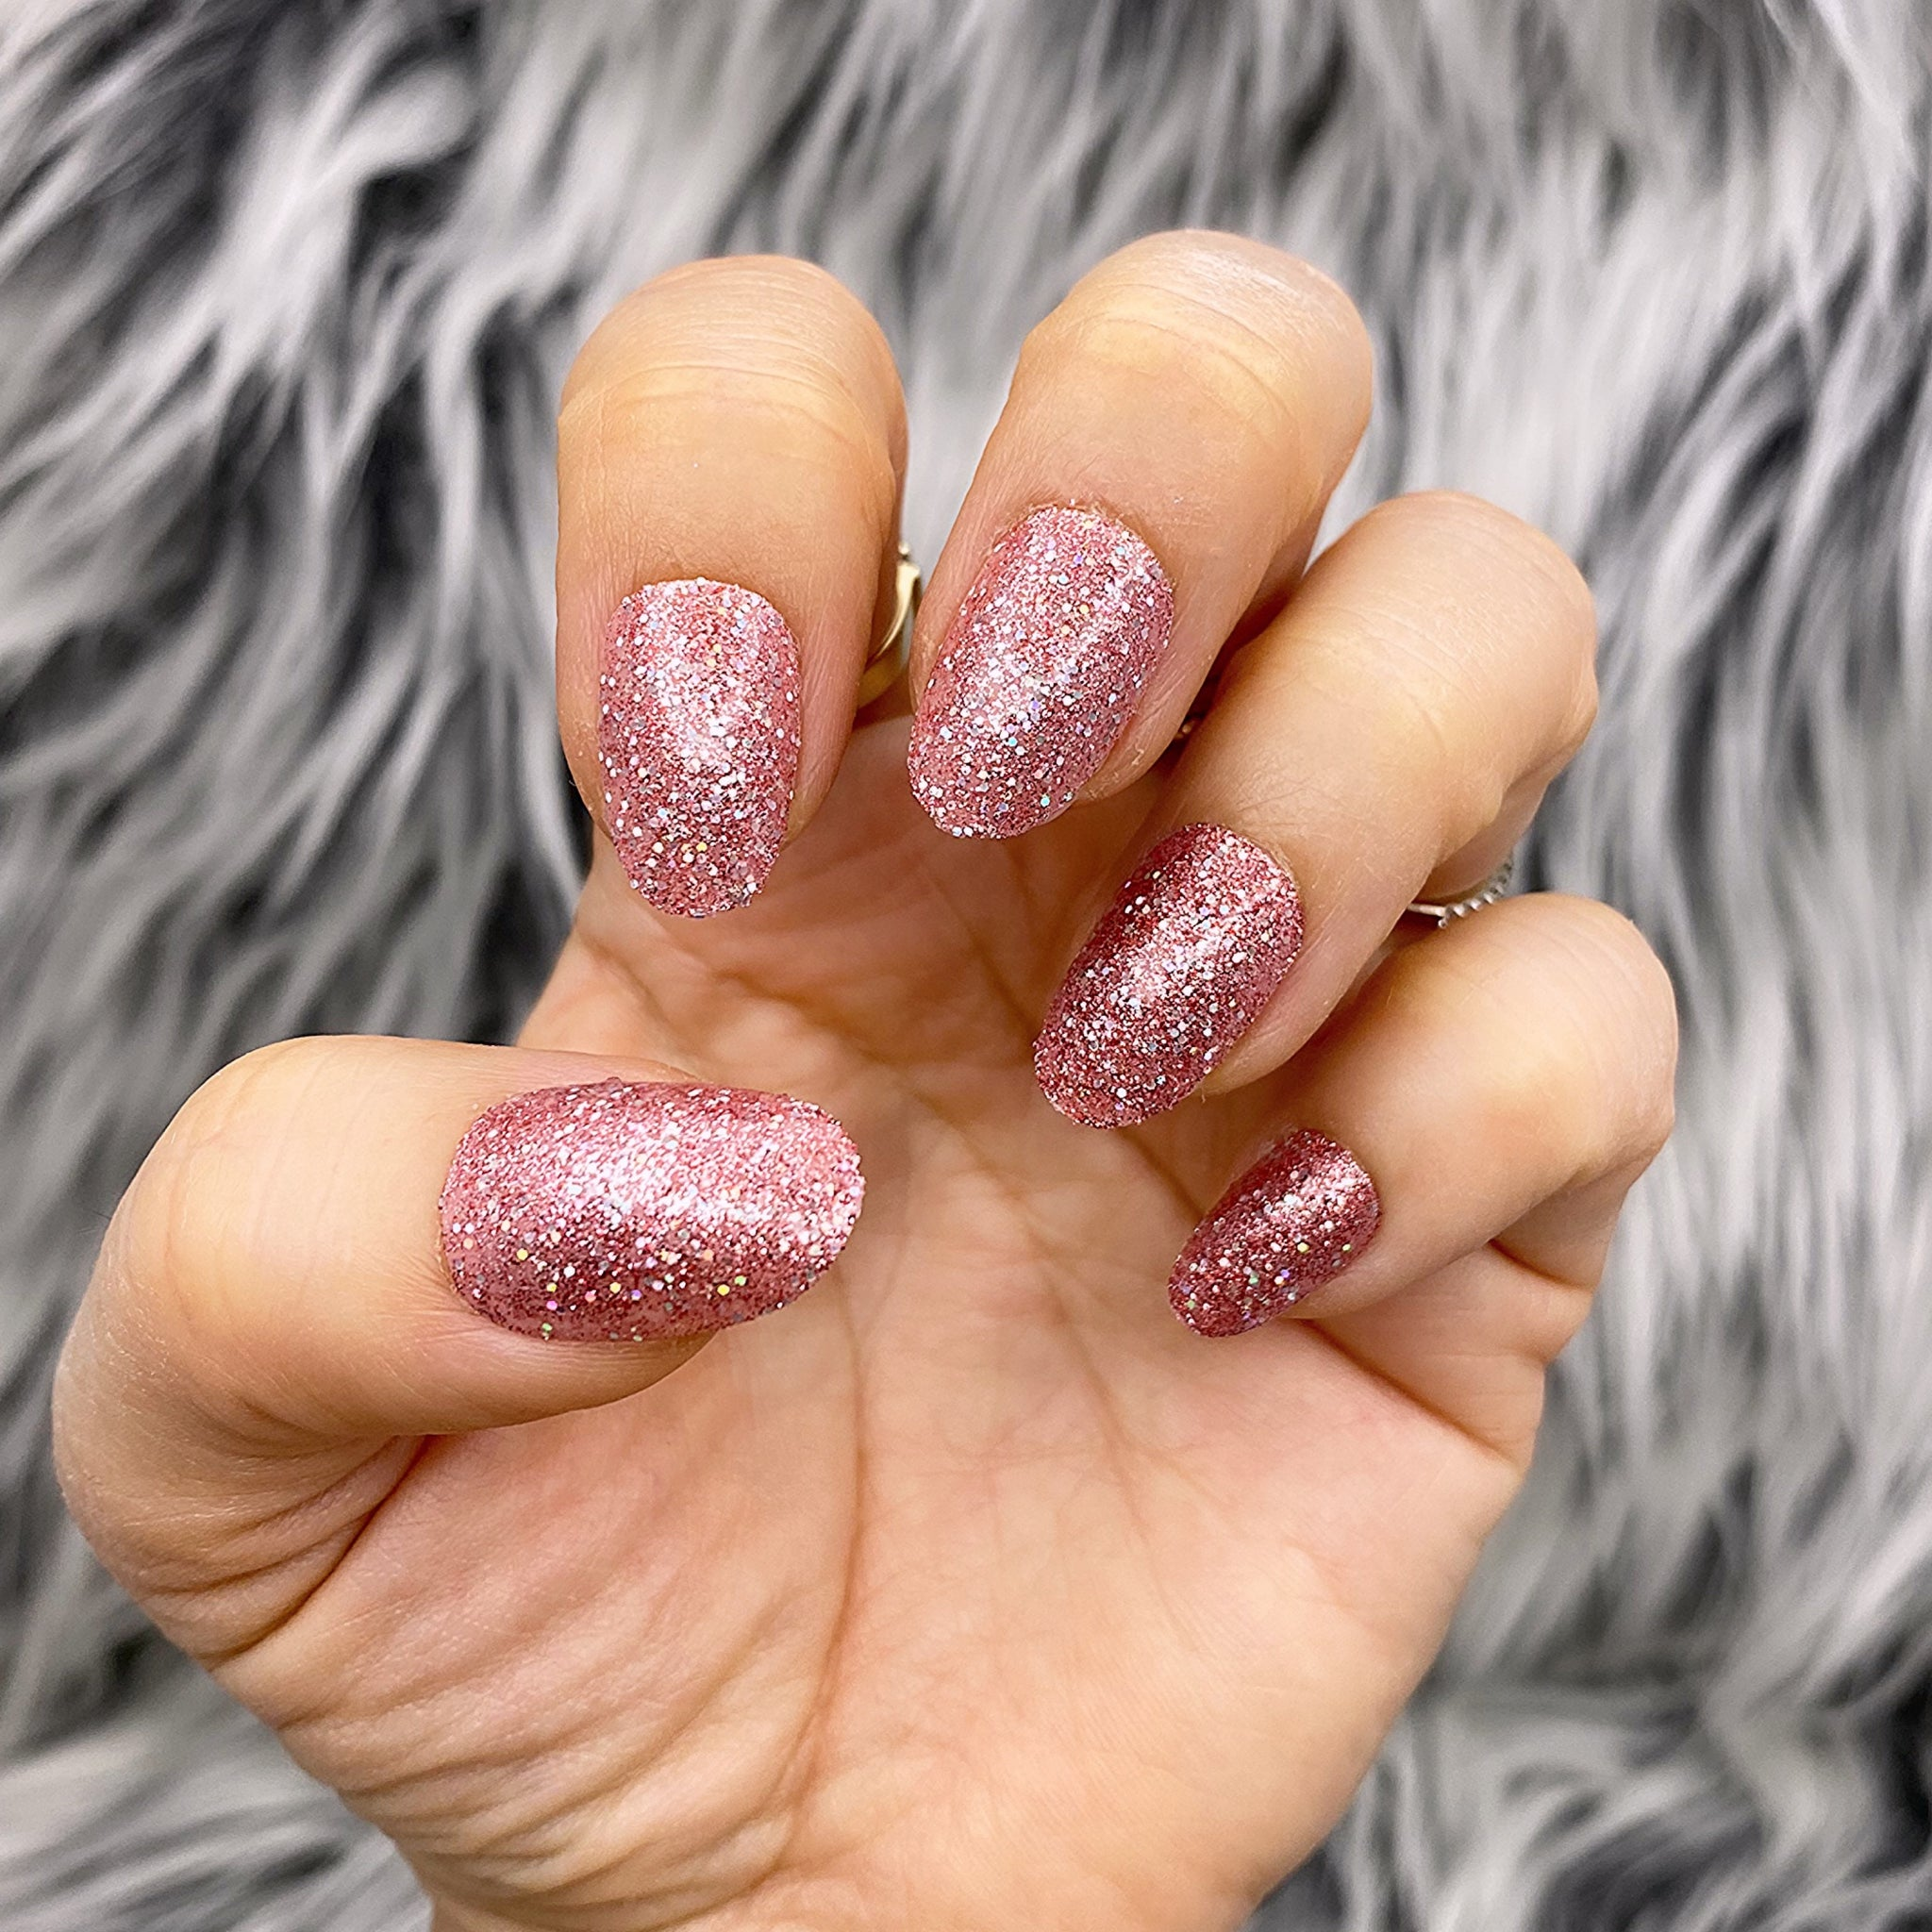 INSTANT GLAM- ROSE GLEAM - ROSE GOLD GLITTER SHORT OVAL PRESS ON NAIL SET